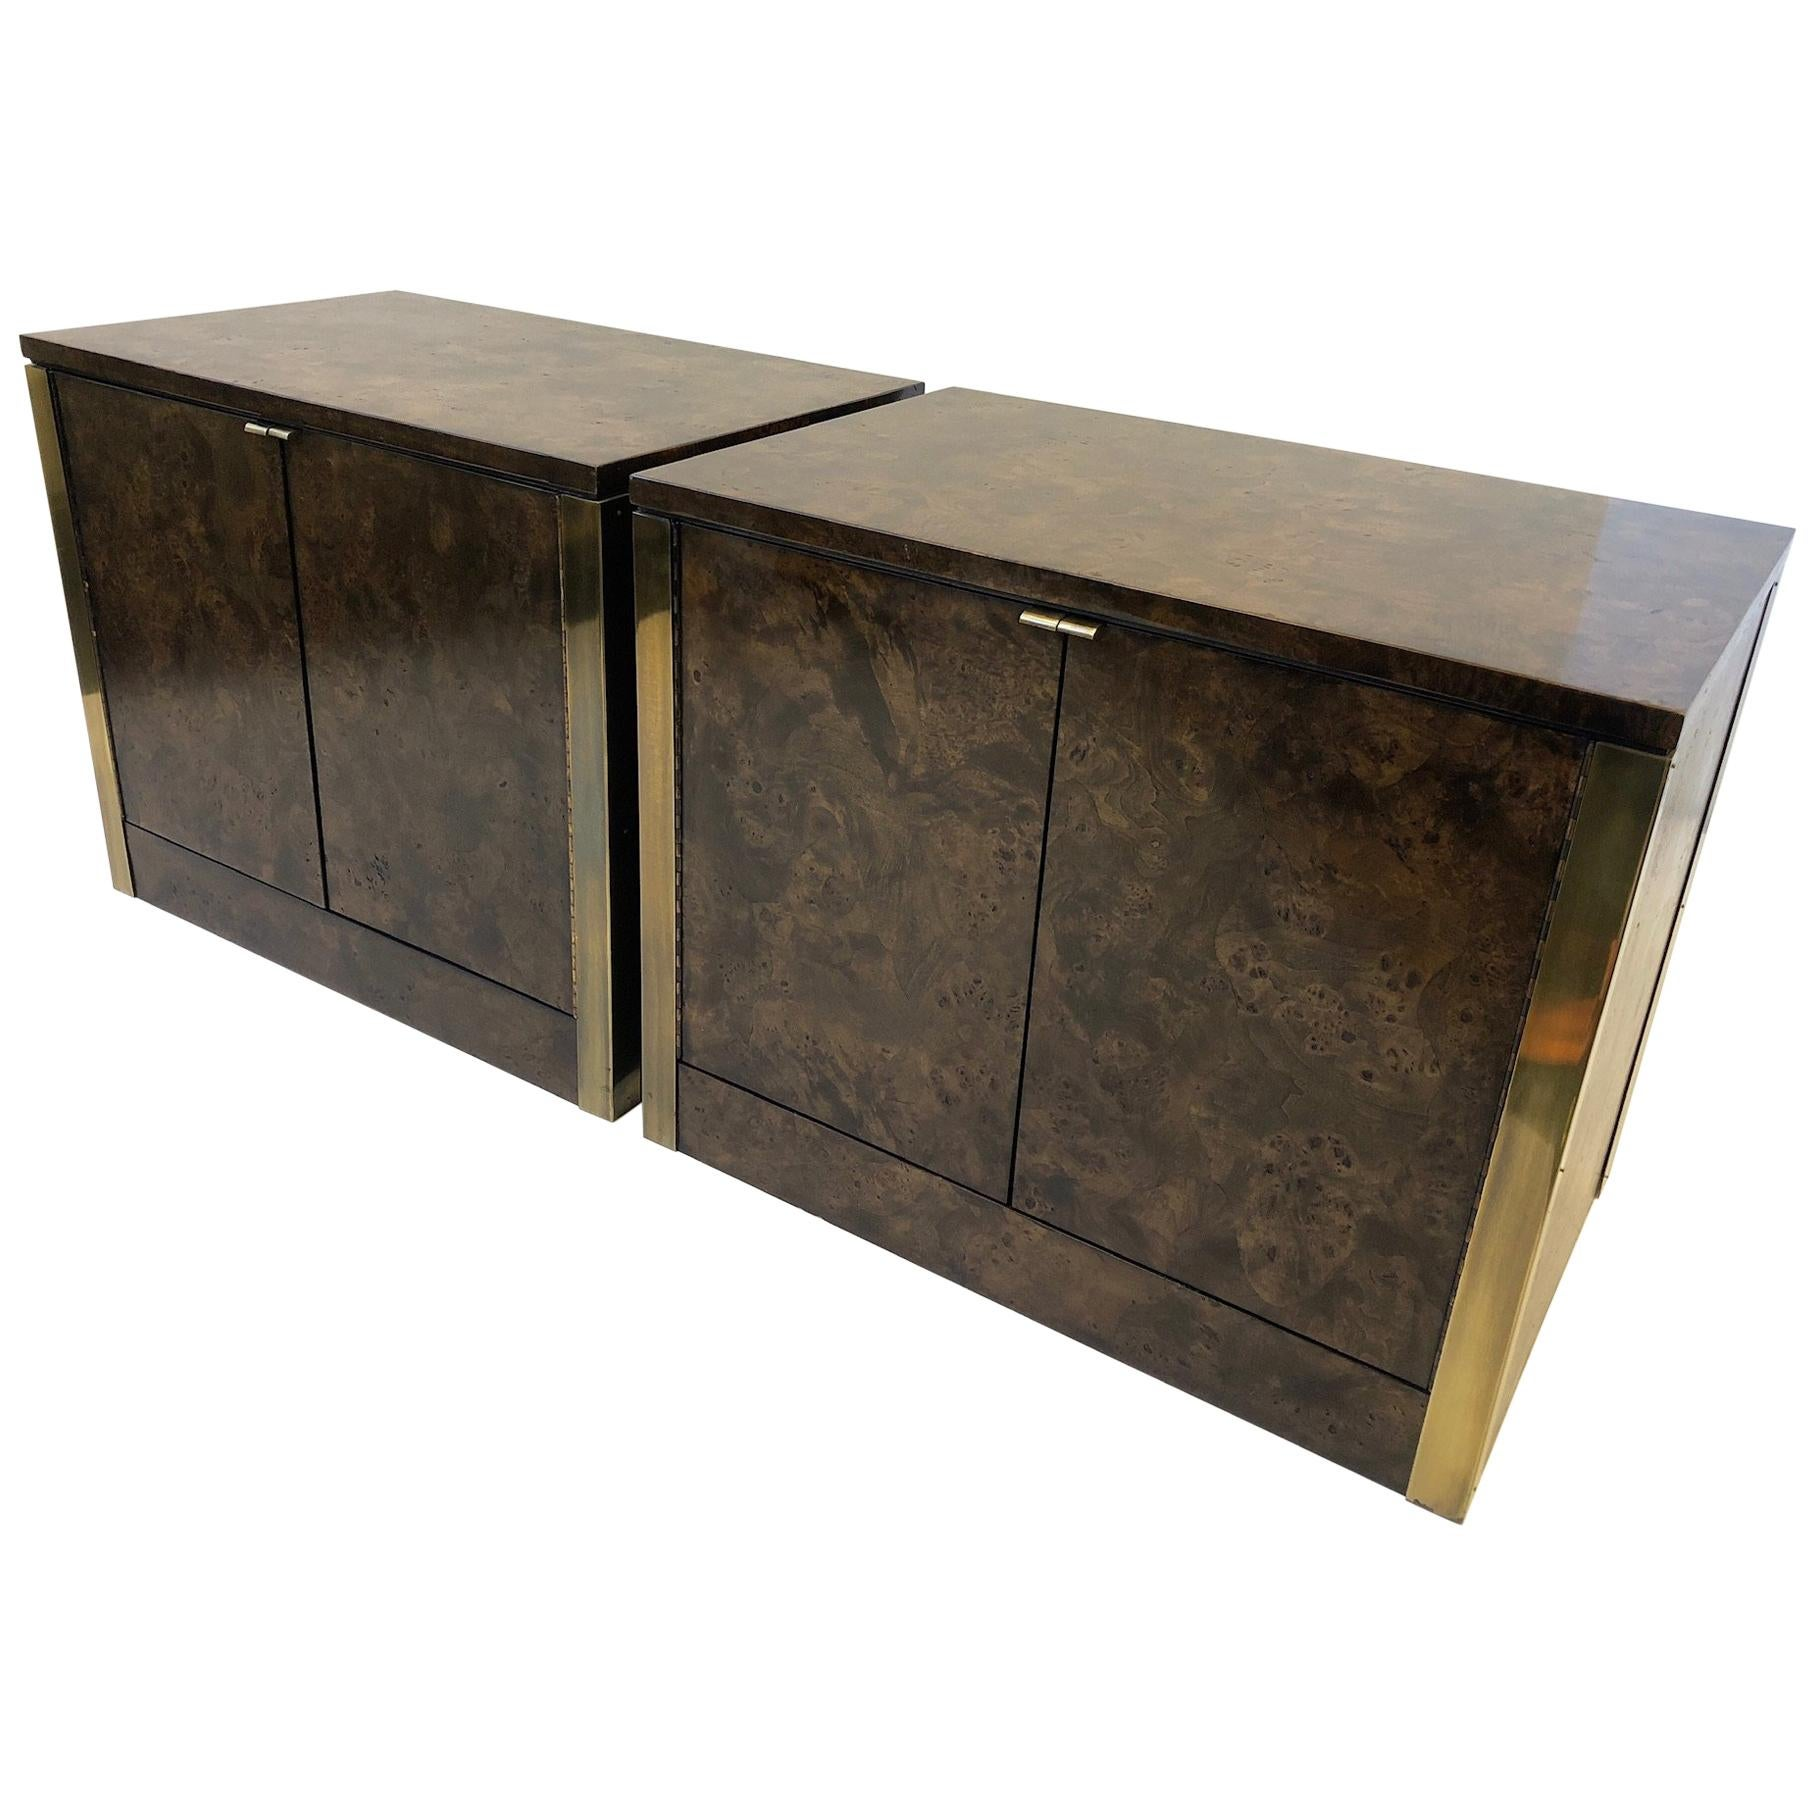 Pair of Burlwood and Brass Nightstands by Mastercraft